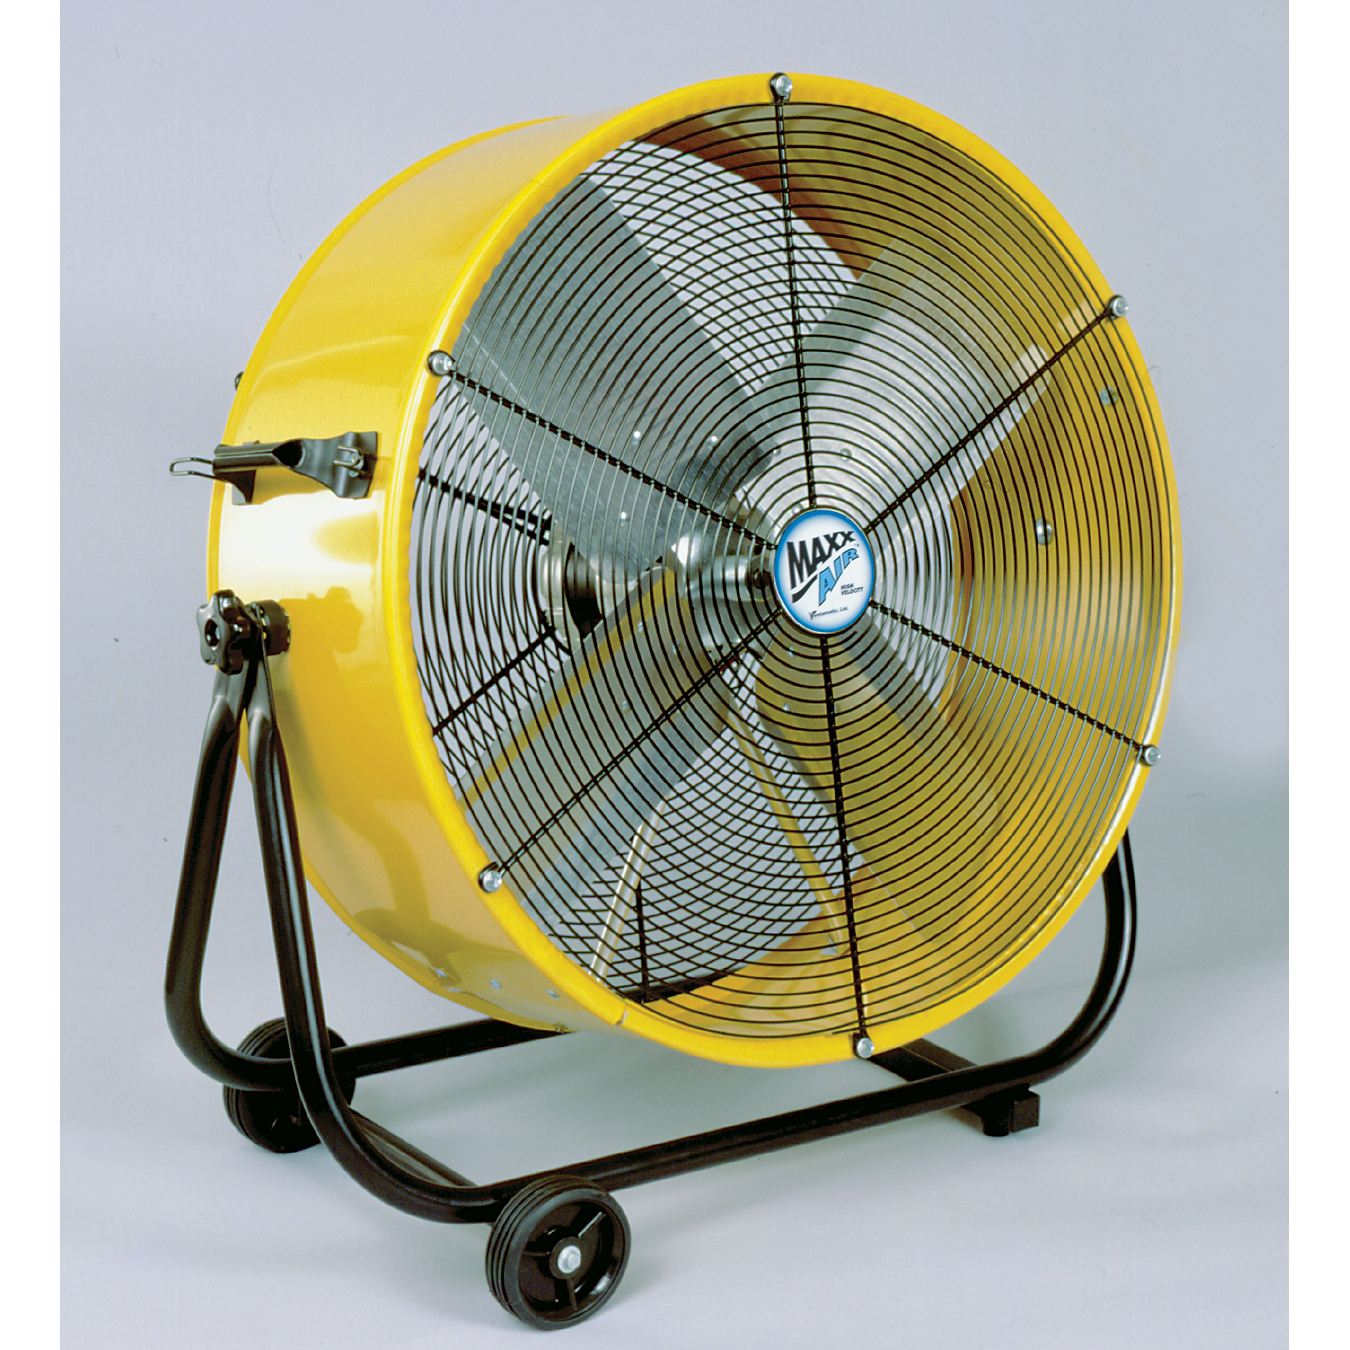 hight resolution of ventamatic bf24tfyel 24 tilt fan barrel walmart com fasco fan motor wiring diagram maxxair barrel fan motor wiring diagram